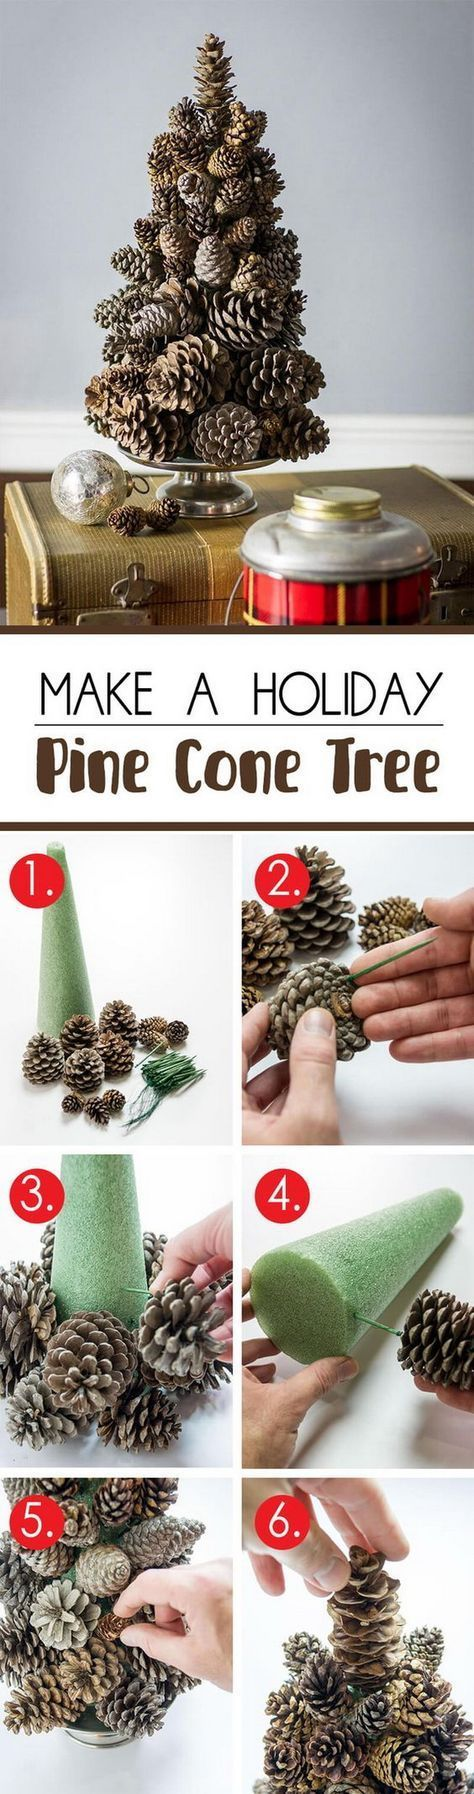 Holiday Pine Cone Tree.